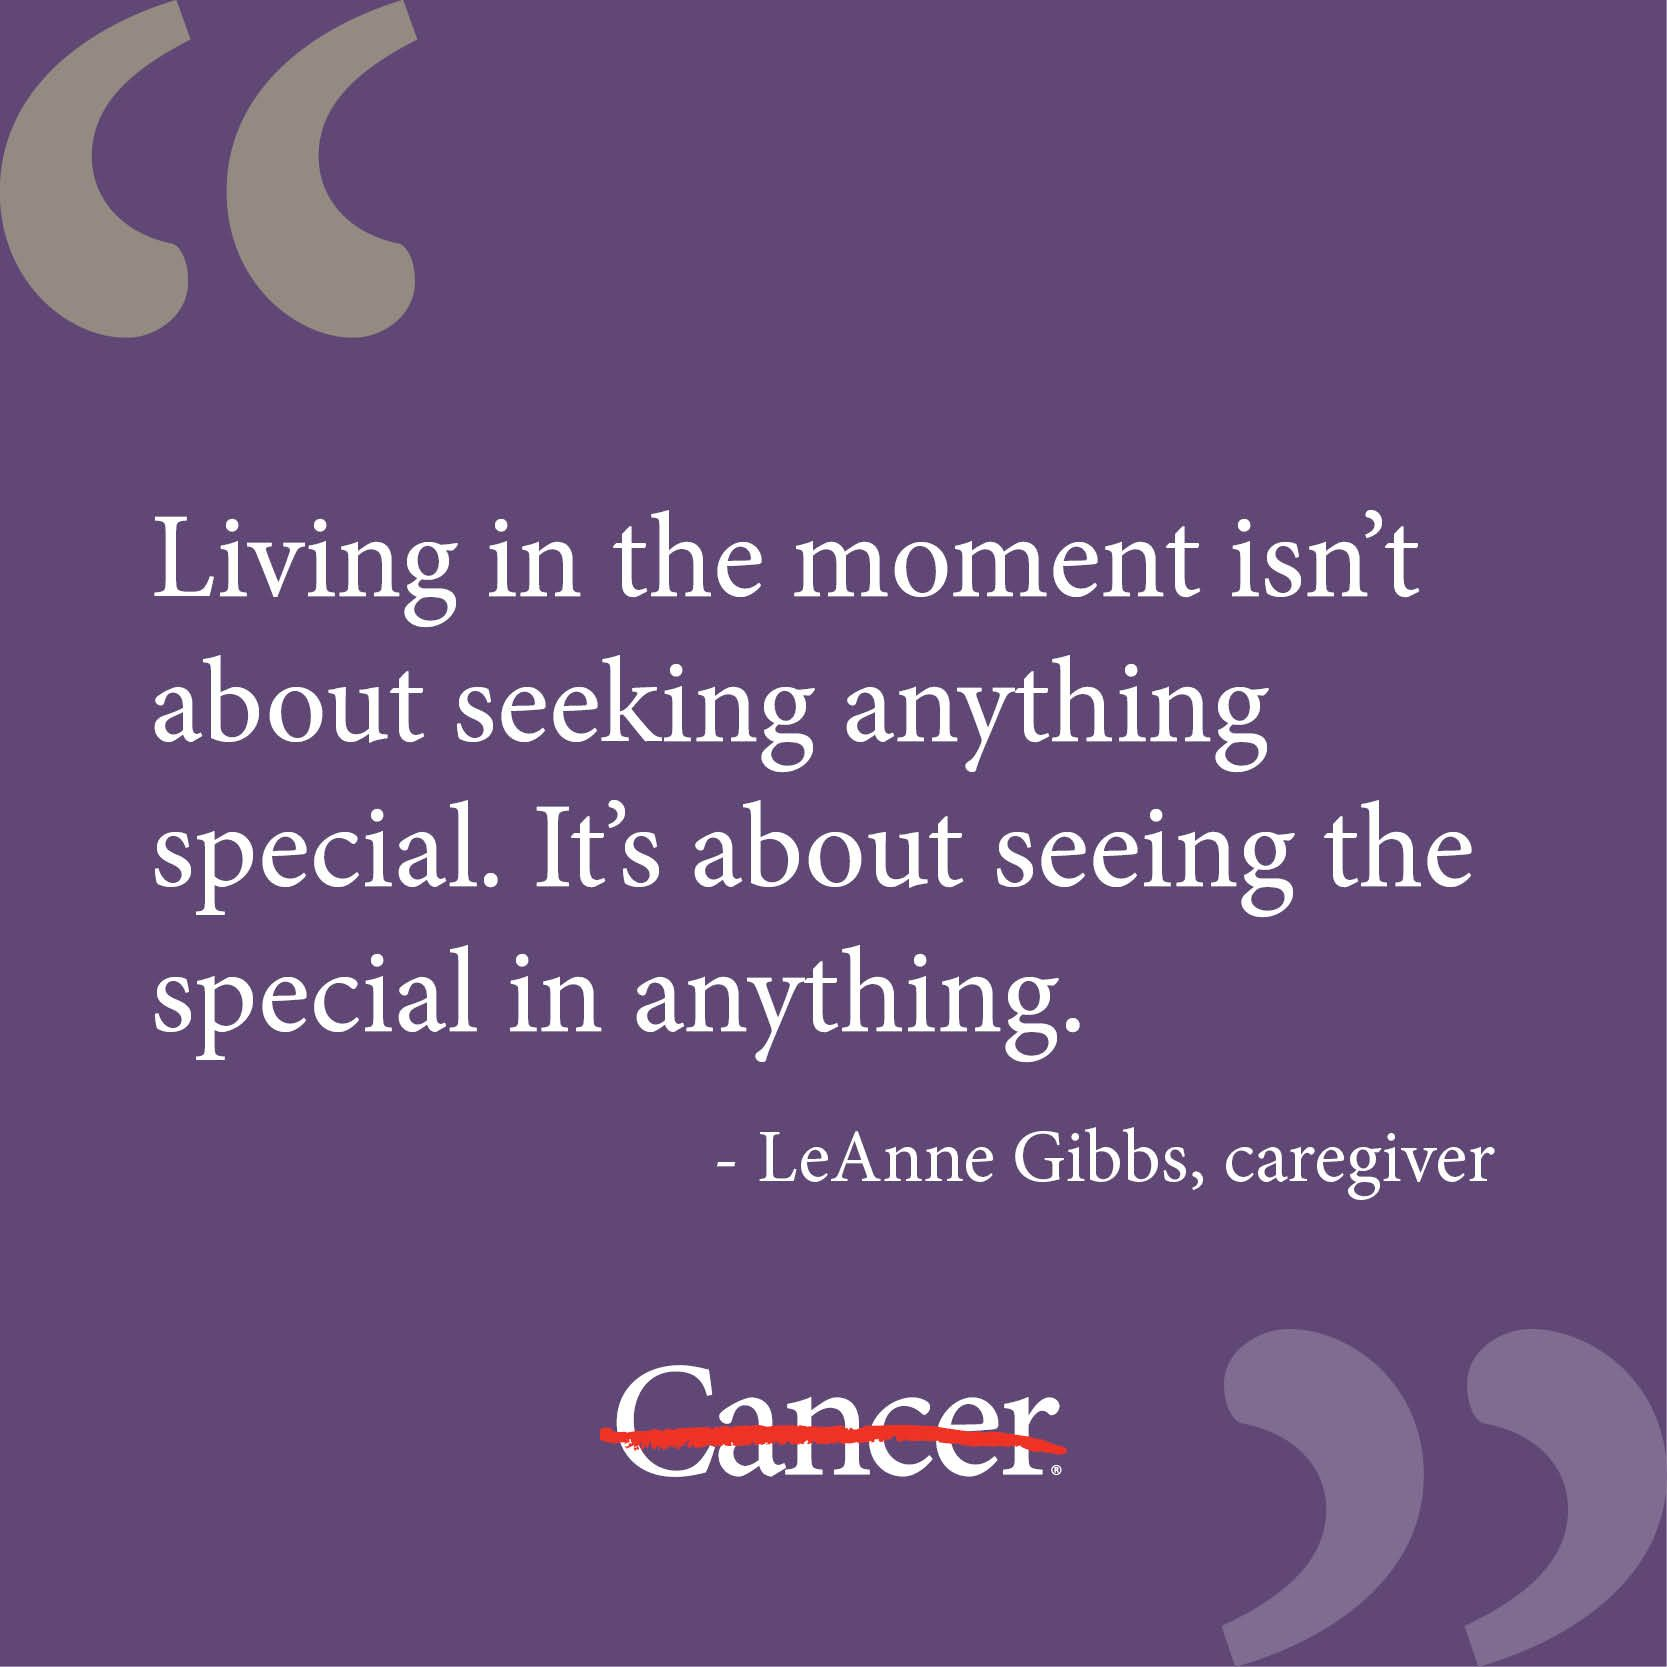 Good Quotes About Living In The Moment: After Her Husband Started Hospice, Cancer Caregiver LeAnne